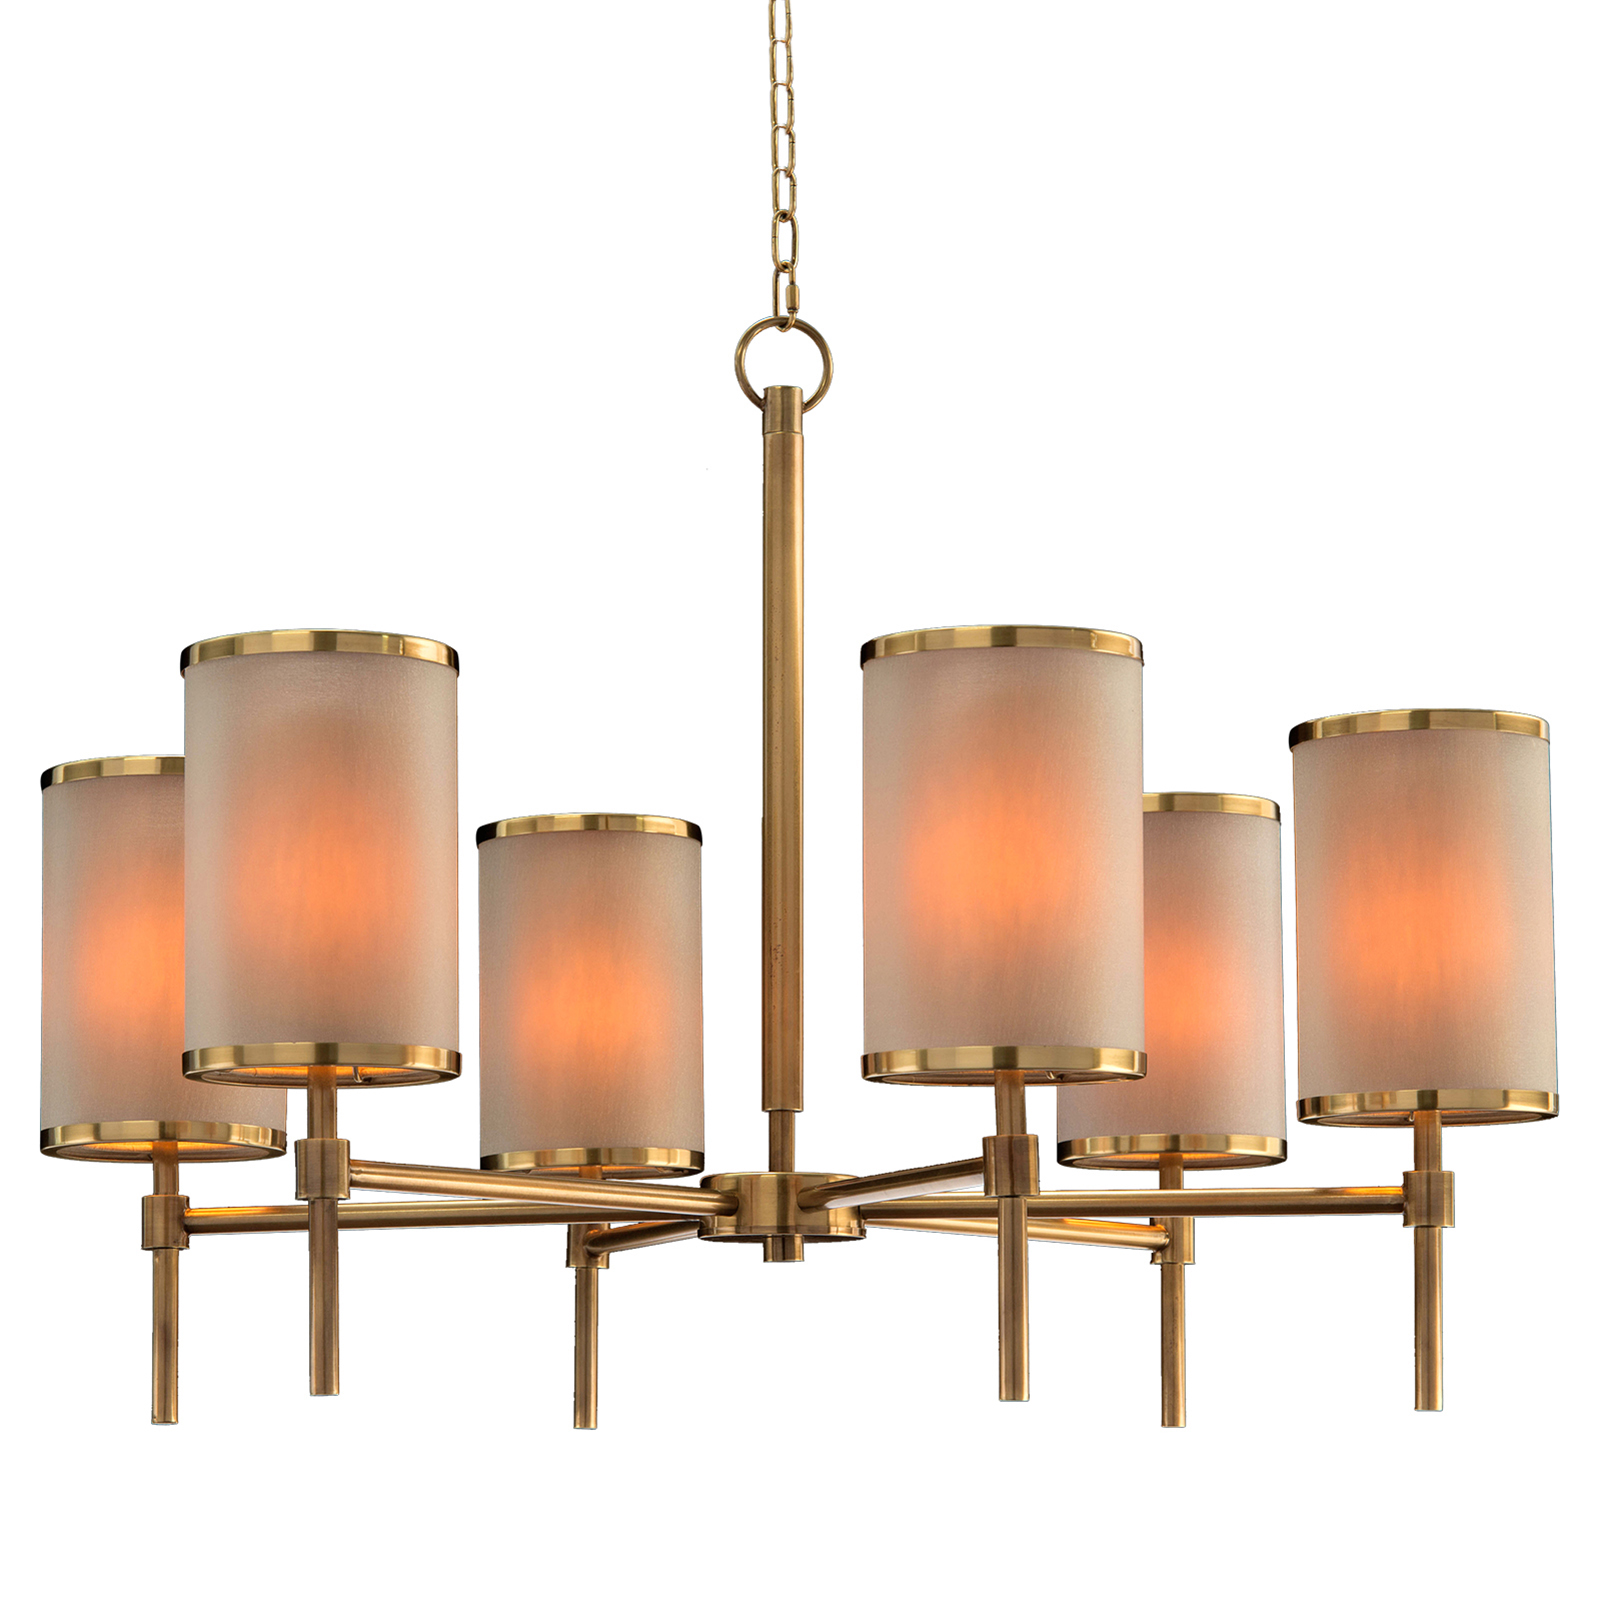 Dooley Modern Classic Brass Tall Drum Shade Chandelier